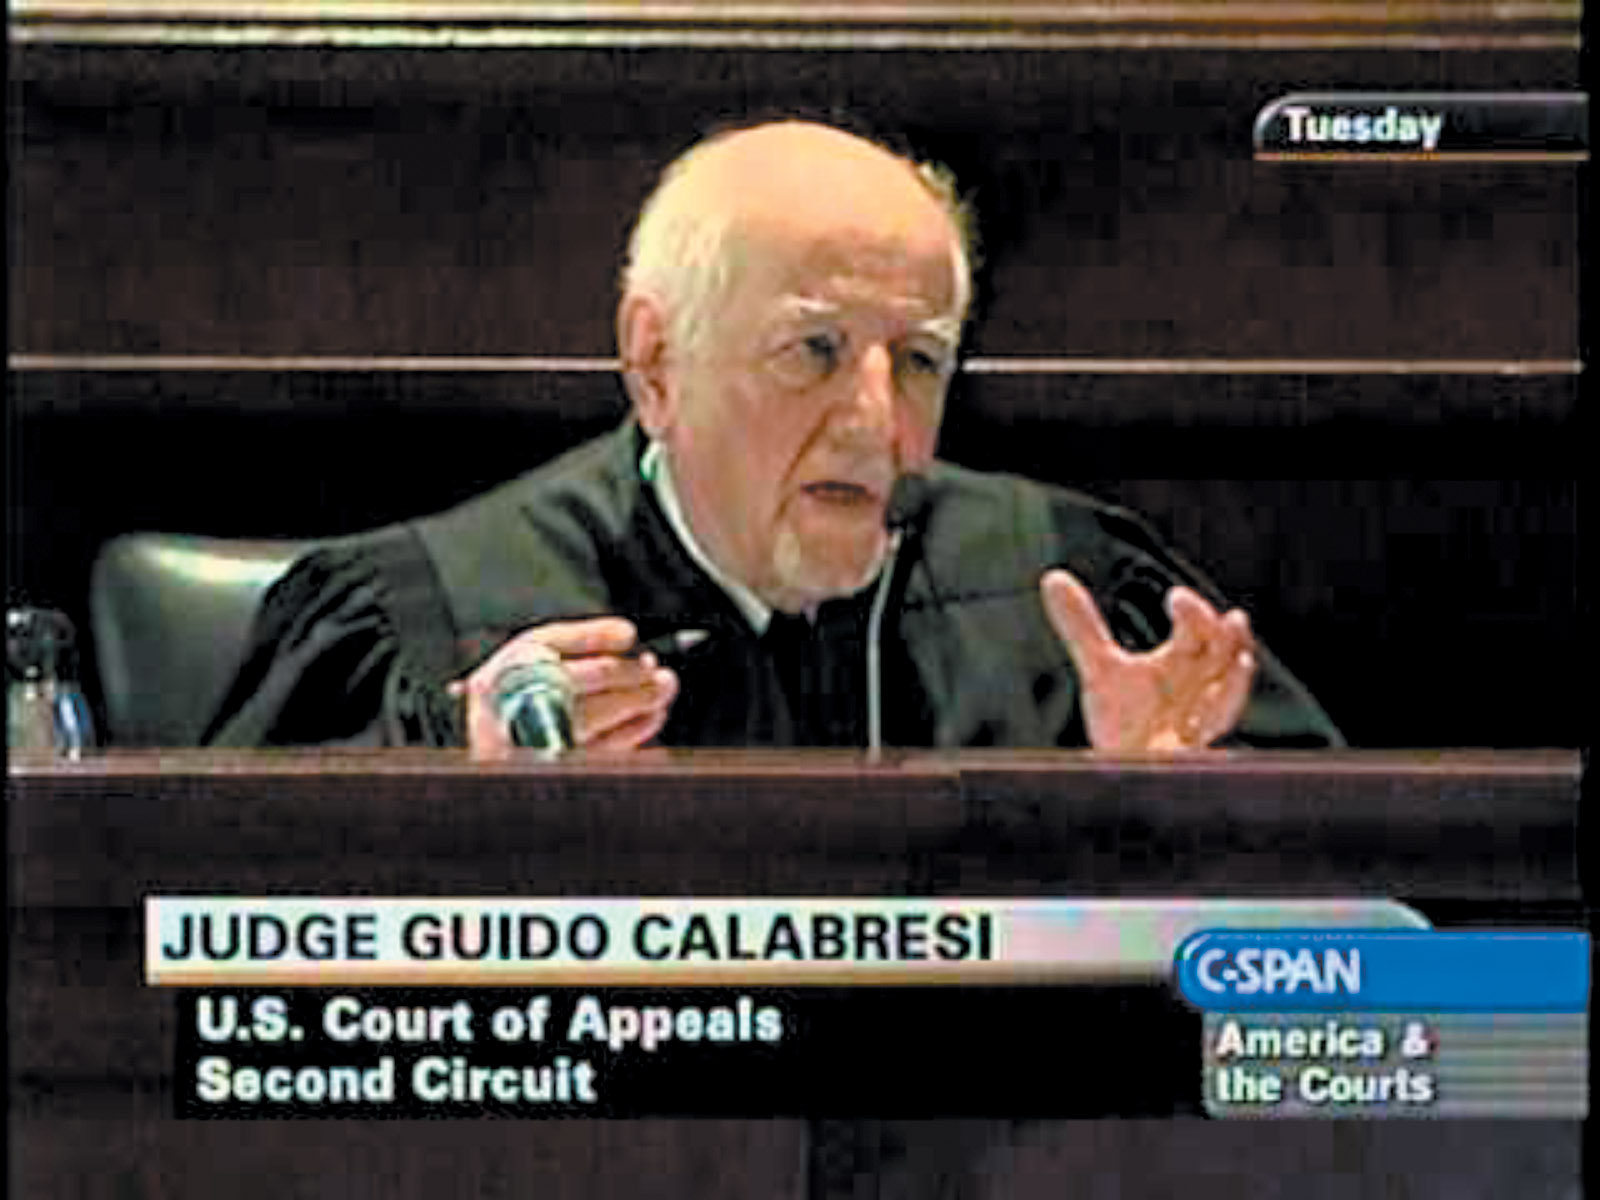 Judge Guido Calabresi during arguments in Arar v. Ashcroft, New York City, December 2008. The court ruled that Maher Arar—a Canadian citizen who was wrongly deported by the US to Syria, where he was held for a year and subjected to torture—had no right to sue US government officials. In his dissent, Calabresi argued that 'when the history of this distinguished court is written, today's majority opinion will be viewed with dismay.'